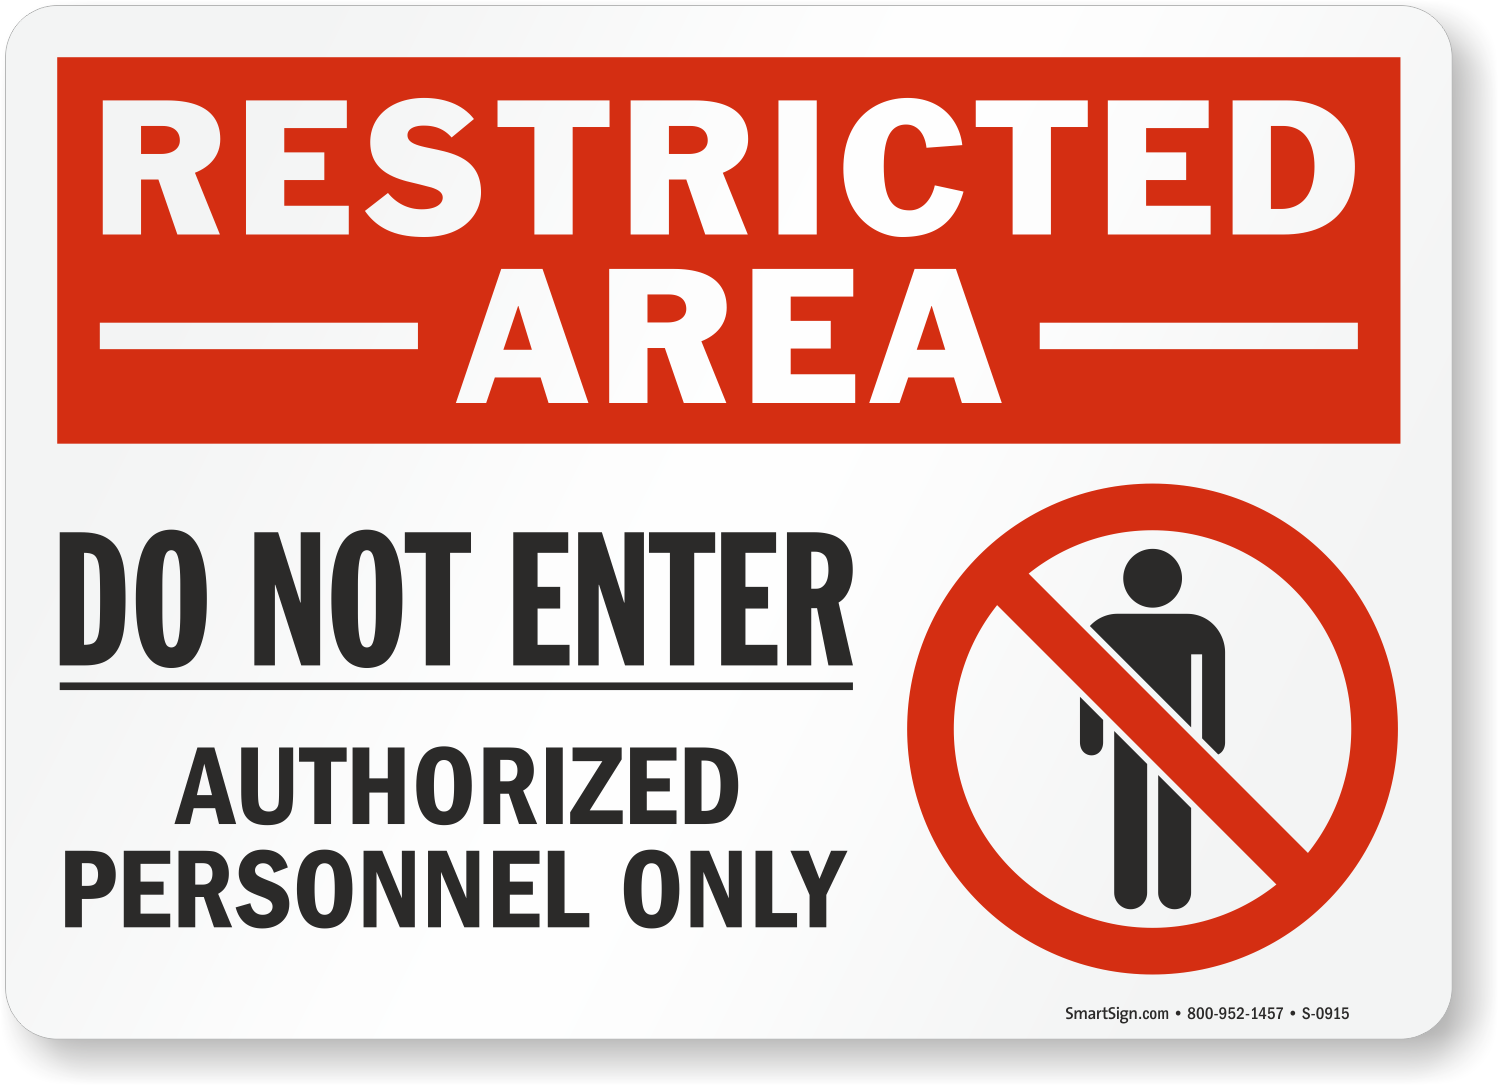 image regarding Do Not Enter Sign Printable named Minimal Neighborhood Do Not Input Approved Workers Basically Signal